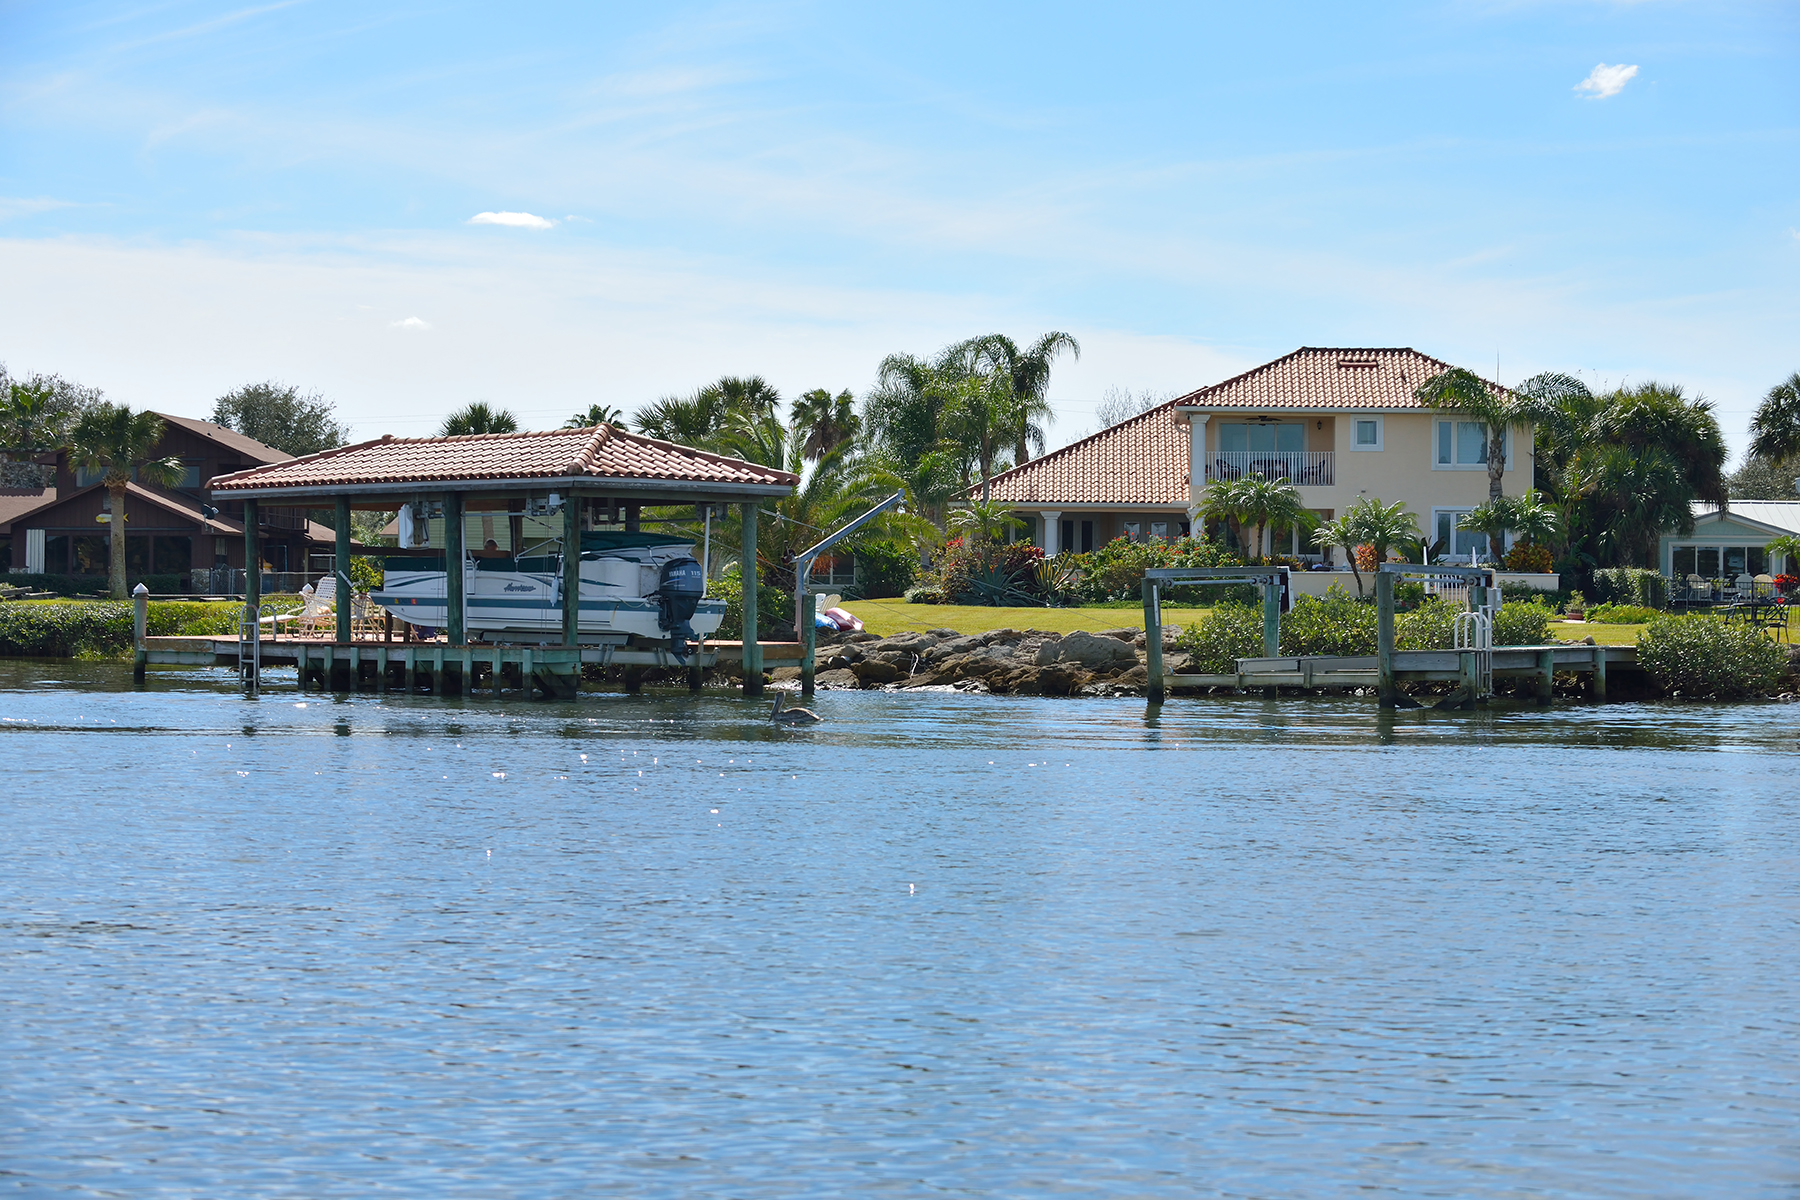 Single Family Home for Sale at PORT ORANGE AND THE BEACHES 109 Cunningham Dr New Smyrna Beach, Florida, 32168 United States